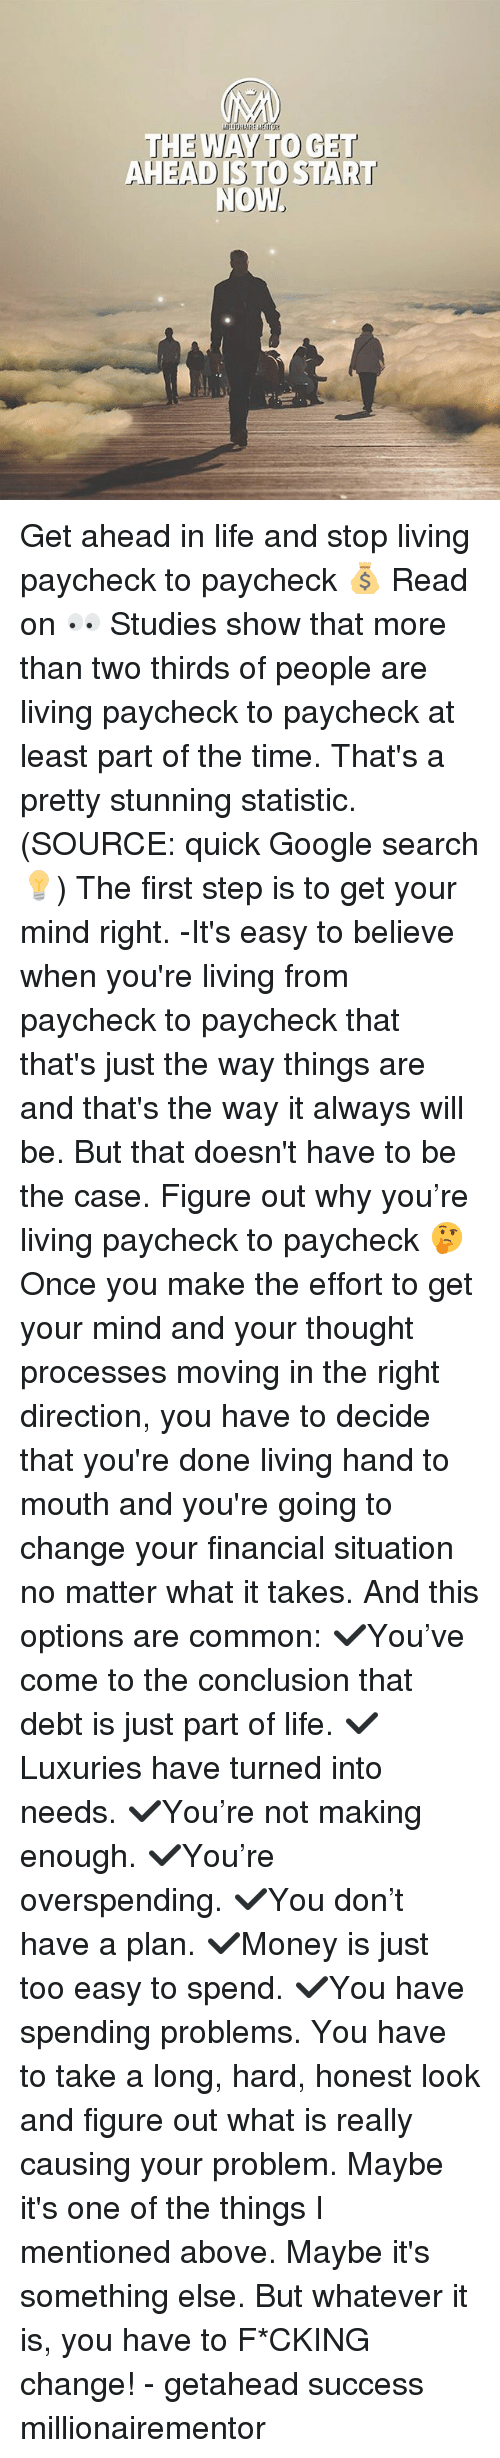 Google, Life, and Memes: THE WAY TO GET  AHEAD ISTO START Get ahead in life and stop living paycheck to paycheck 💰 Read on 👀 Studies show that more than two thirds of people are living paycheck to paycheck at least part of the time. That's a pretty stunning statistic. (SOURCE: quick Google search💡) The first step is to get your mind right. -It's easy to believe when you're living from paycheck to paycheck that that's just the way things are and that's the way it always will be. But that doesn't have to be the case. Figure out why you're living paycheck to paycheck 🤔 Once you make the effort to get your mind and your thought processes moving in the right direction, you have to decide that you're done living hand to mouth and you're going to change your financial situation no matter what it takes. And this options are common: ✔️You've come to the conclusion that debt is just part of life. ✔️Luxuries have turned into needs. ✔️You're not making enough. ✔️You're overspending. ✔️You don't have a plan. ✔️Money is just too easy to spend. ✔️You have spending problems. You have to take a long, hard, honest look and figure out what is really causing your problem. Maybe it's one of the things I mentioned above. Maybe it's something else. But whatever it is, you have to F*CKING change! - getahead success millionairementor